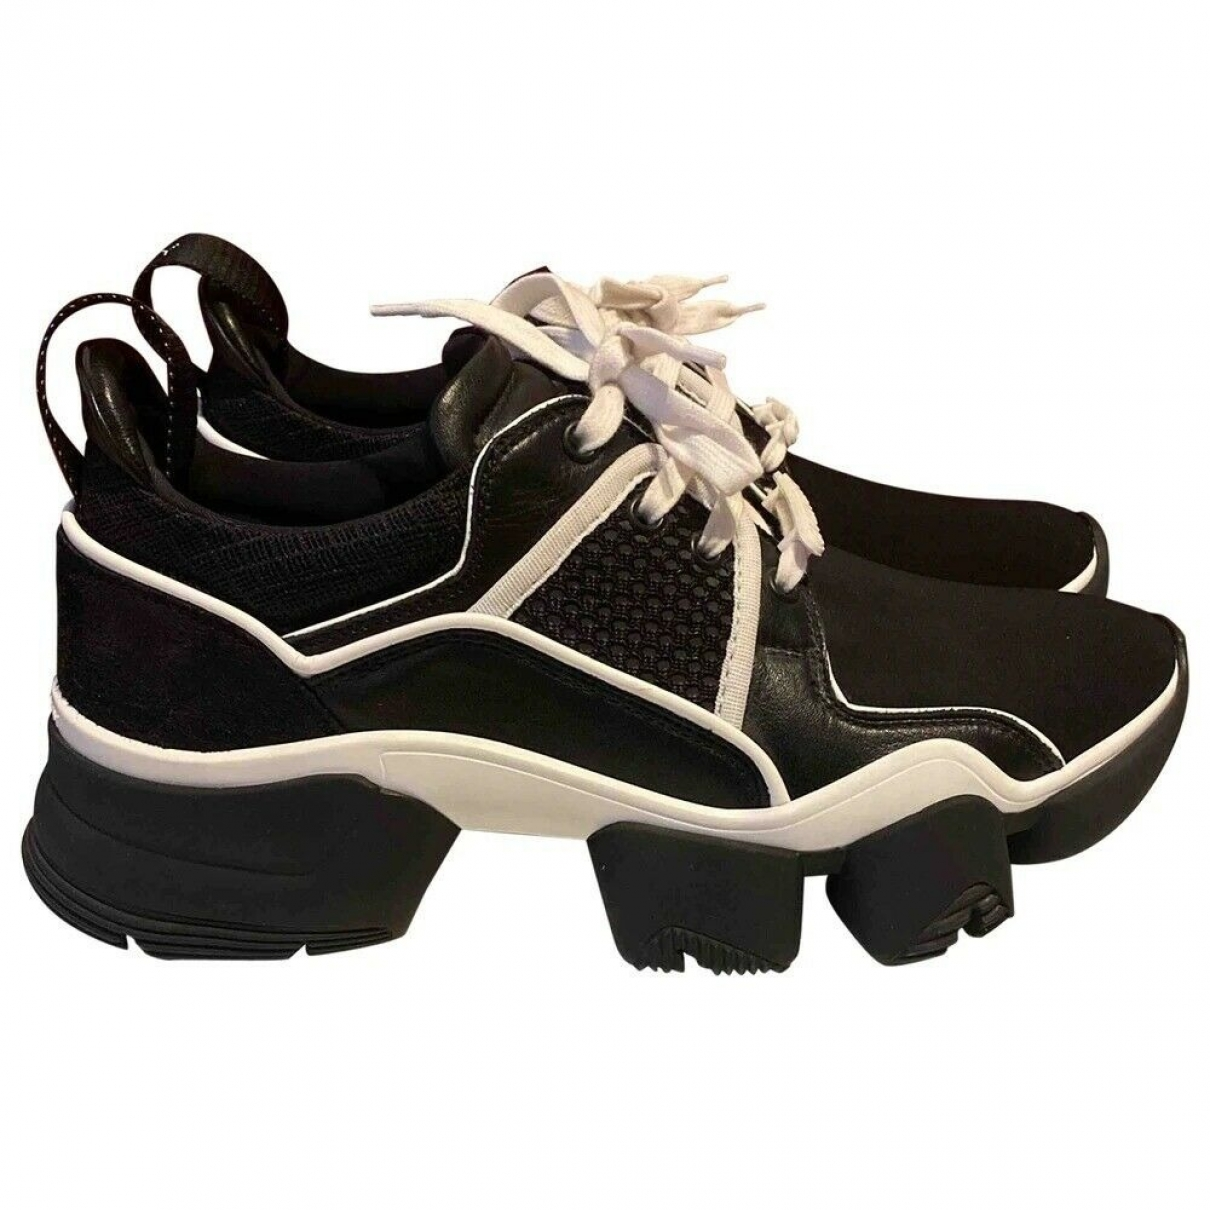 Deportivas Jaw Givenchy